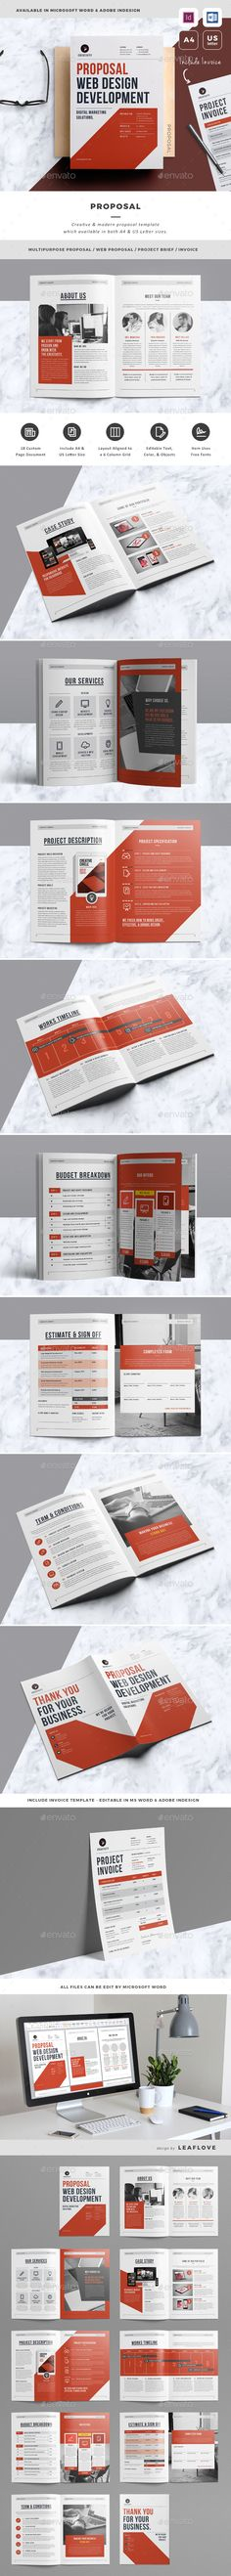 #Proposal - Proposals & #Invoices Stationery Download here: https://graphicriver.net/item/proposal/19509764?ref=alena994